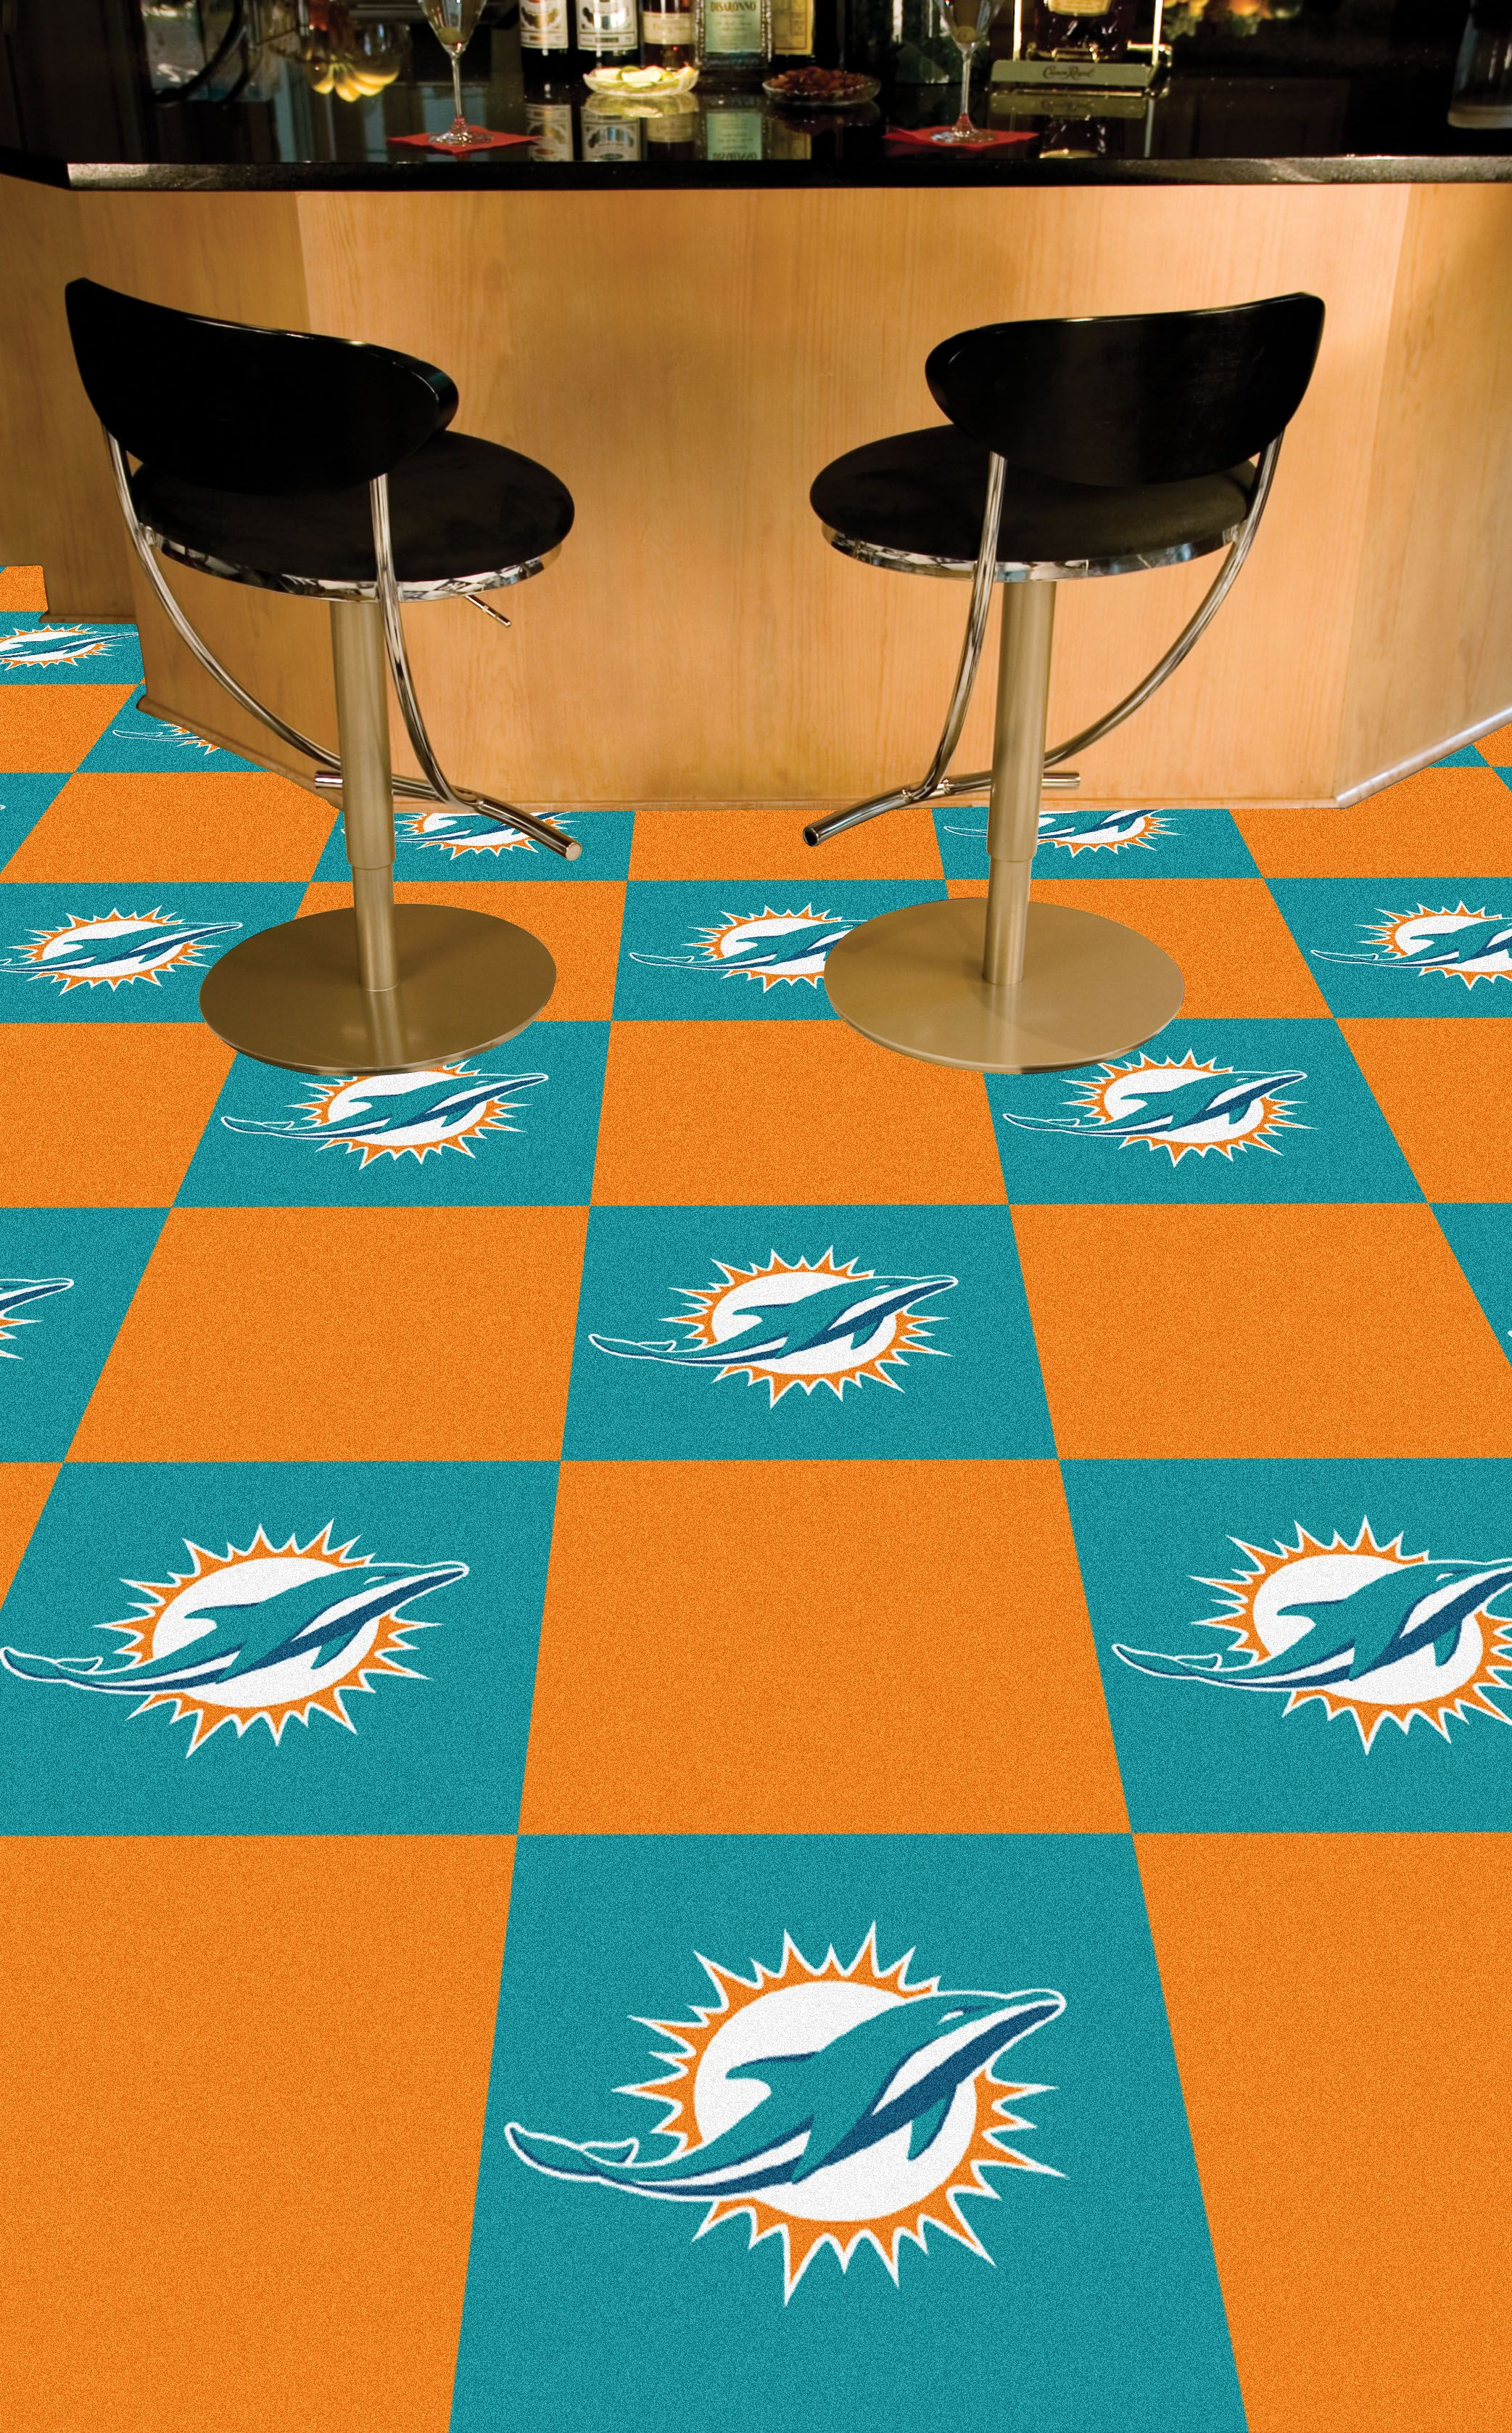 NFL Miami Dolphins Carpet Tiles